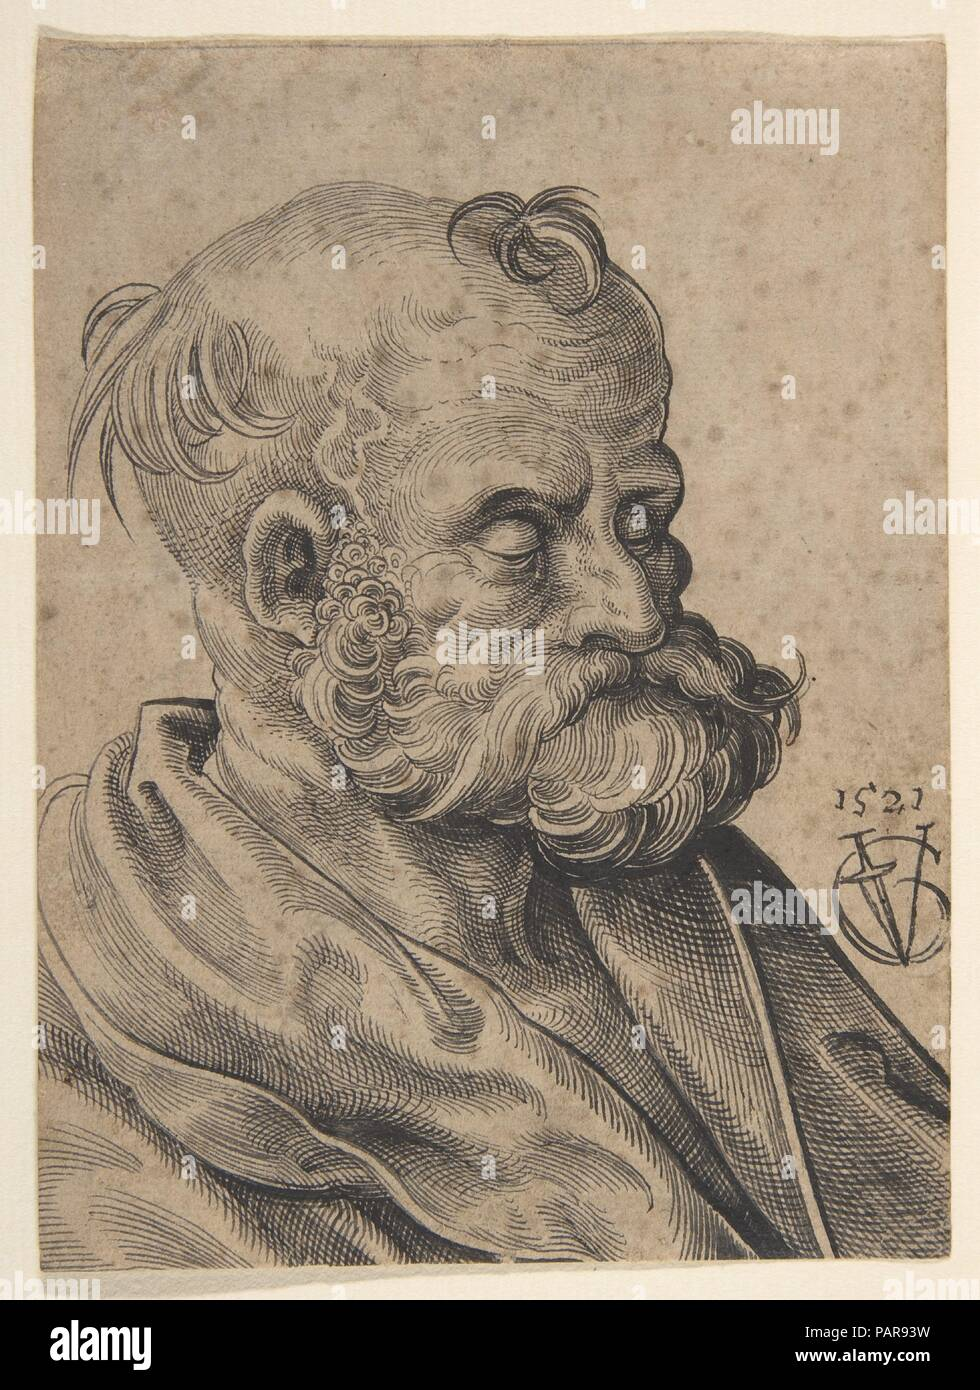 Bust of a Bearded Old Man. Artist: Urs Graf (Swiss, Solothurn ca. 1485-1529/30 Basel). Dimensions: sheet: 5 1/2 x 4 1/8 in. (14 x 10.4 cm). Date: 1521. Museum: Metropolitan Museum of Art, New York, USA. Stock Photo